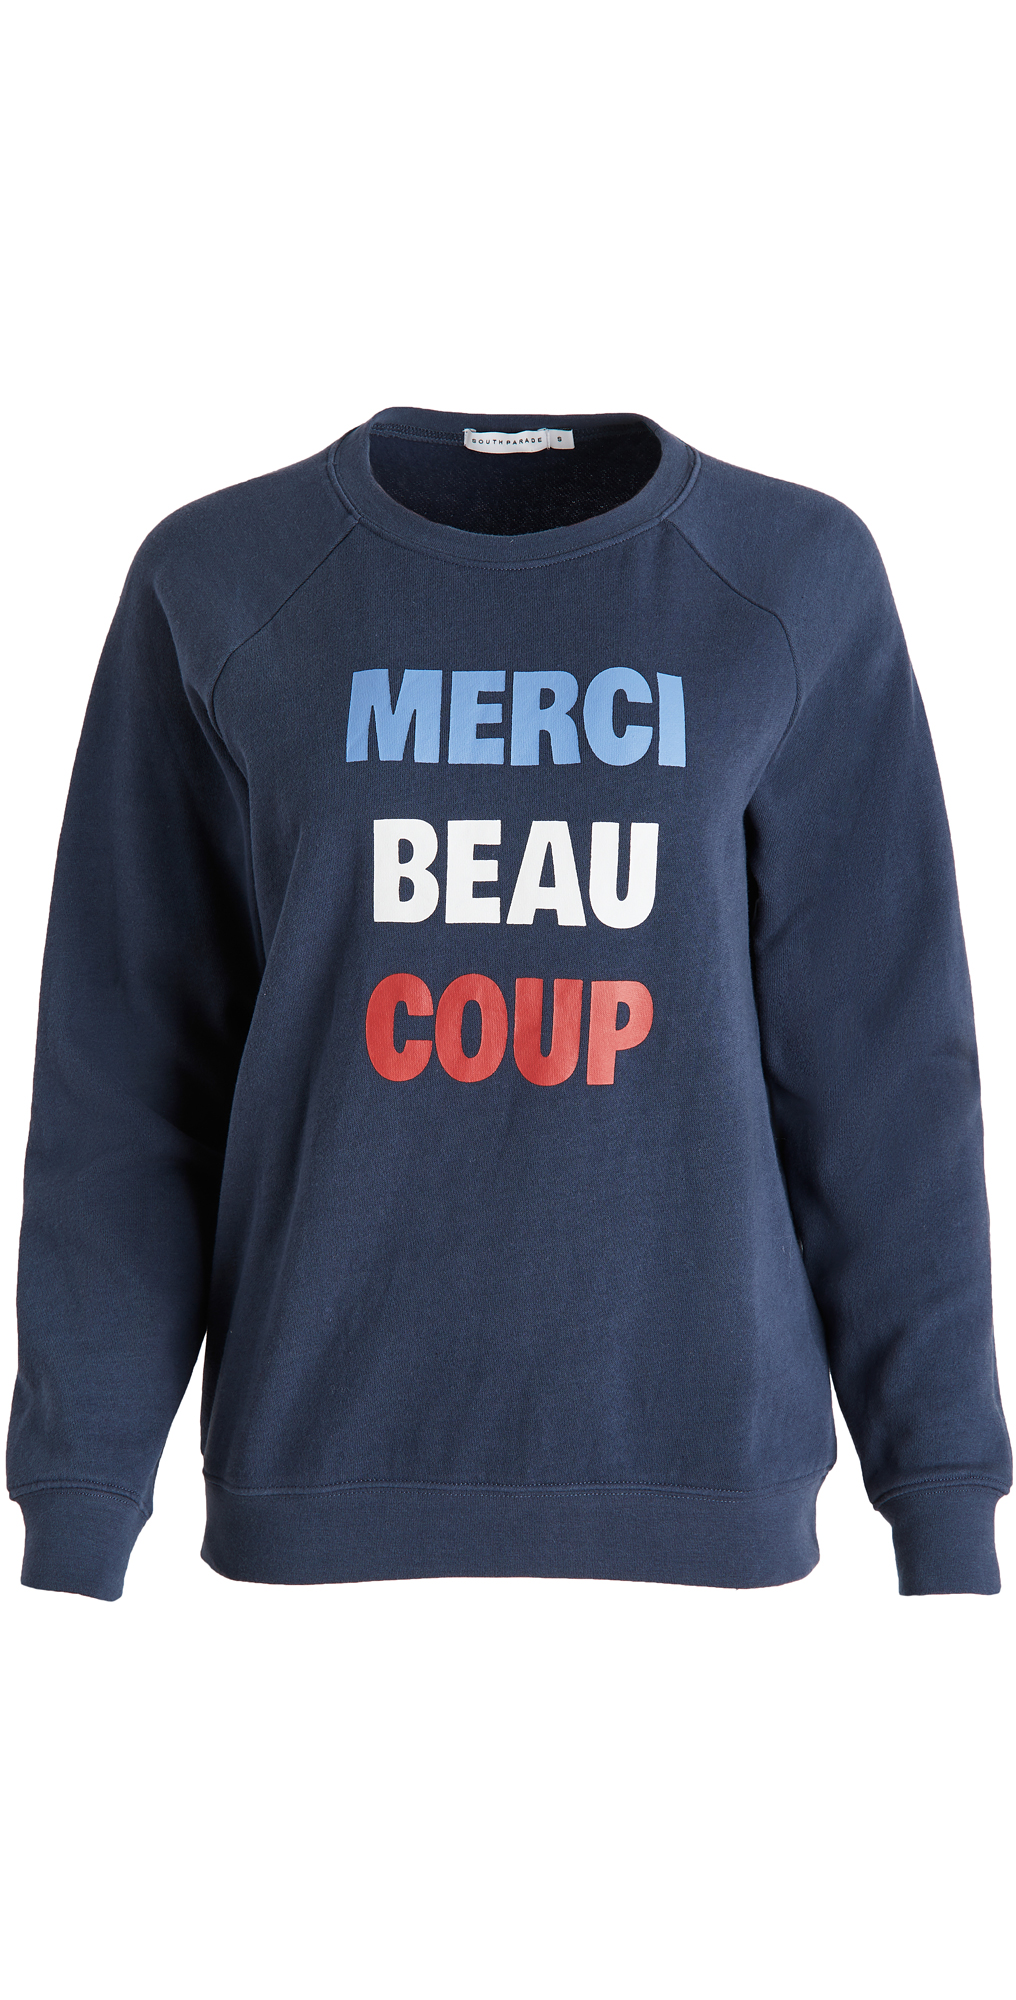 South Parade Merci Beaucoup Rocky Sweatshirt